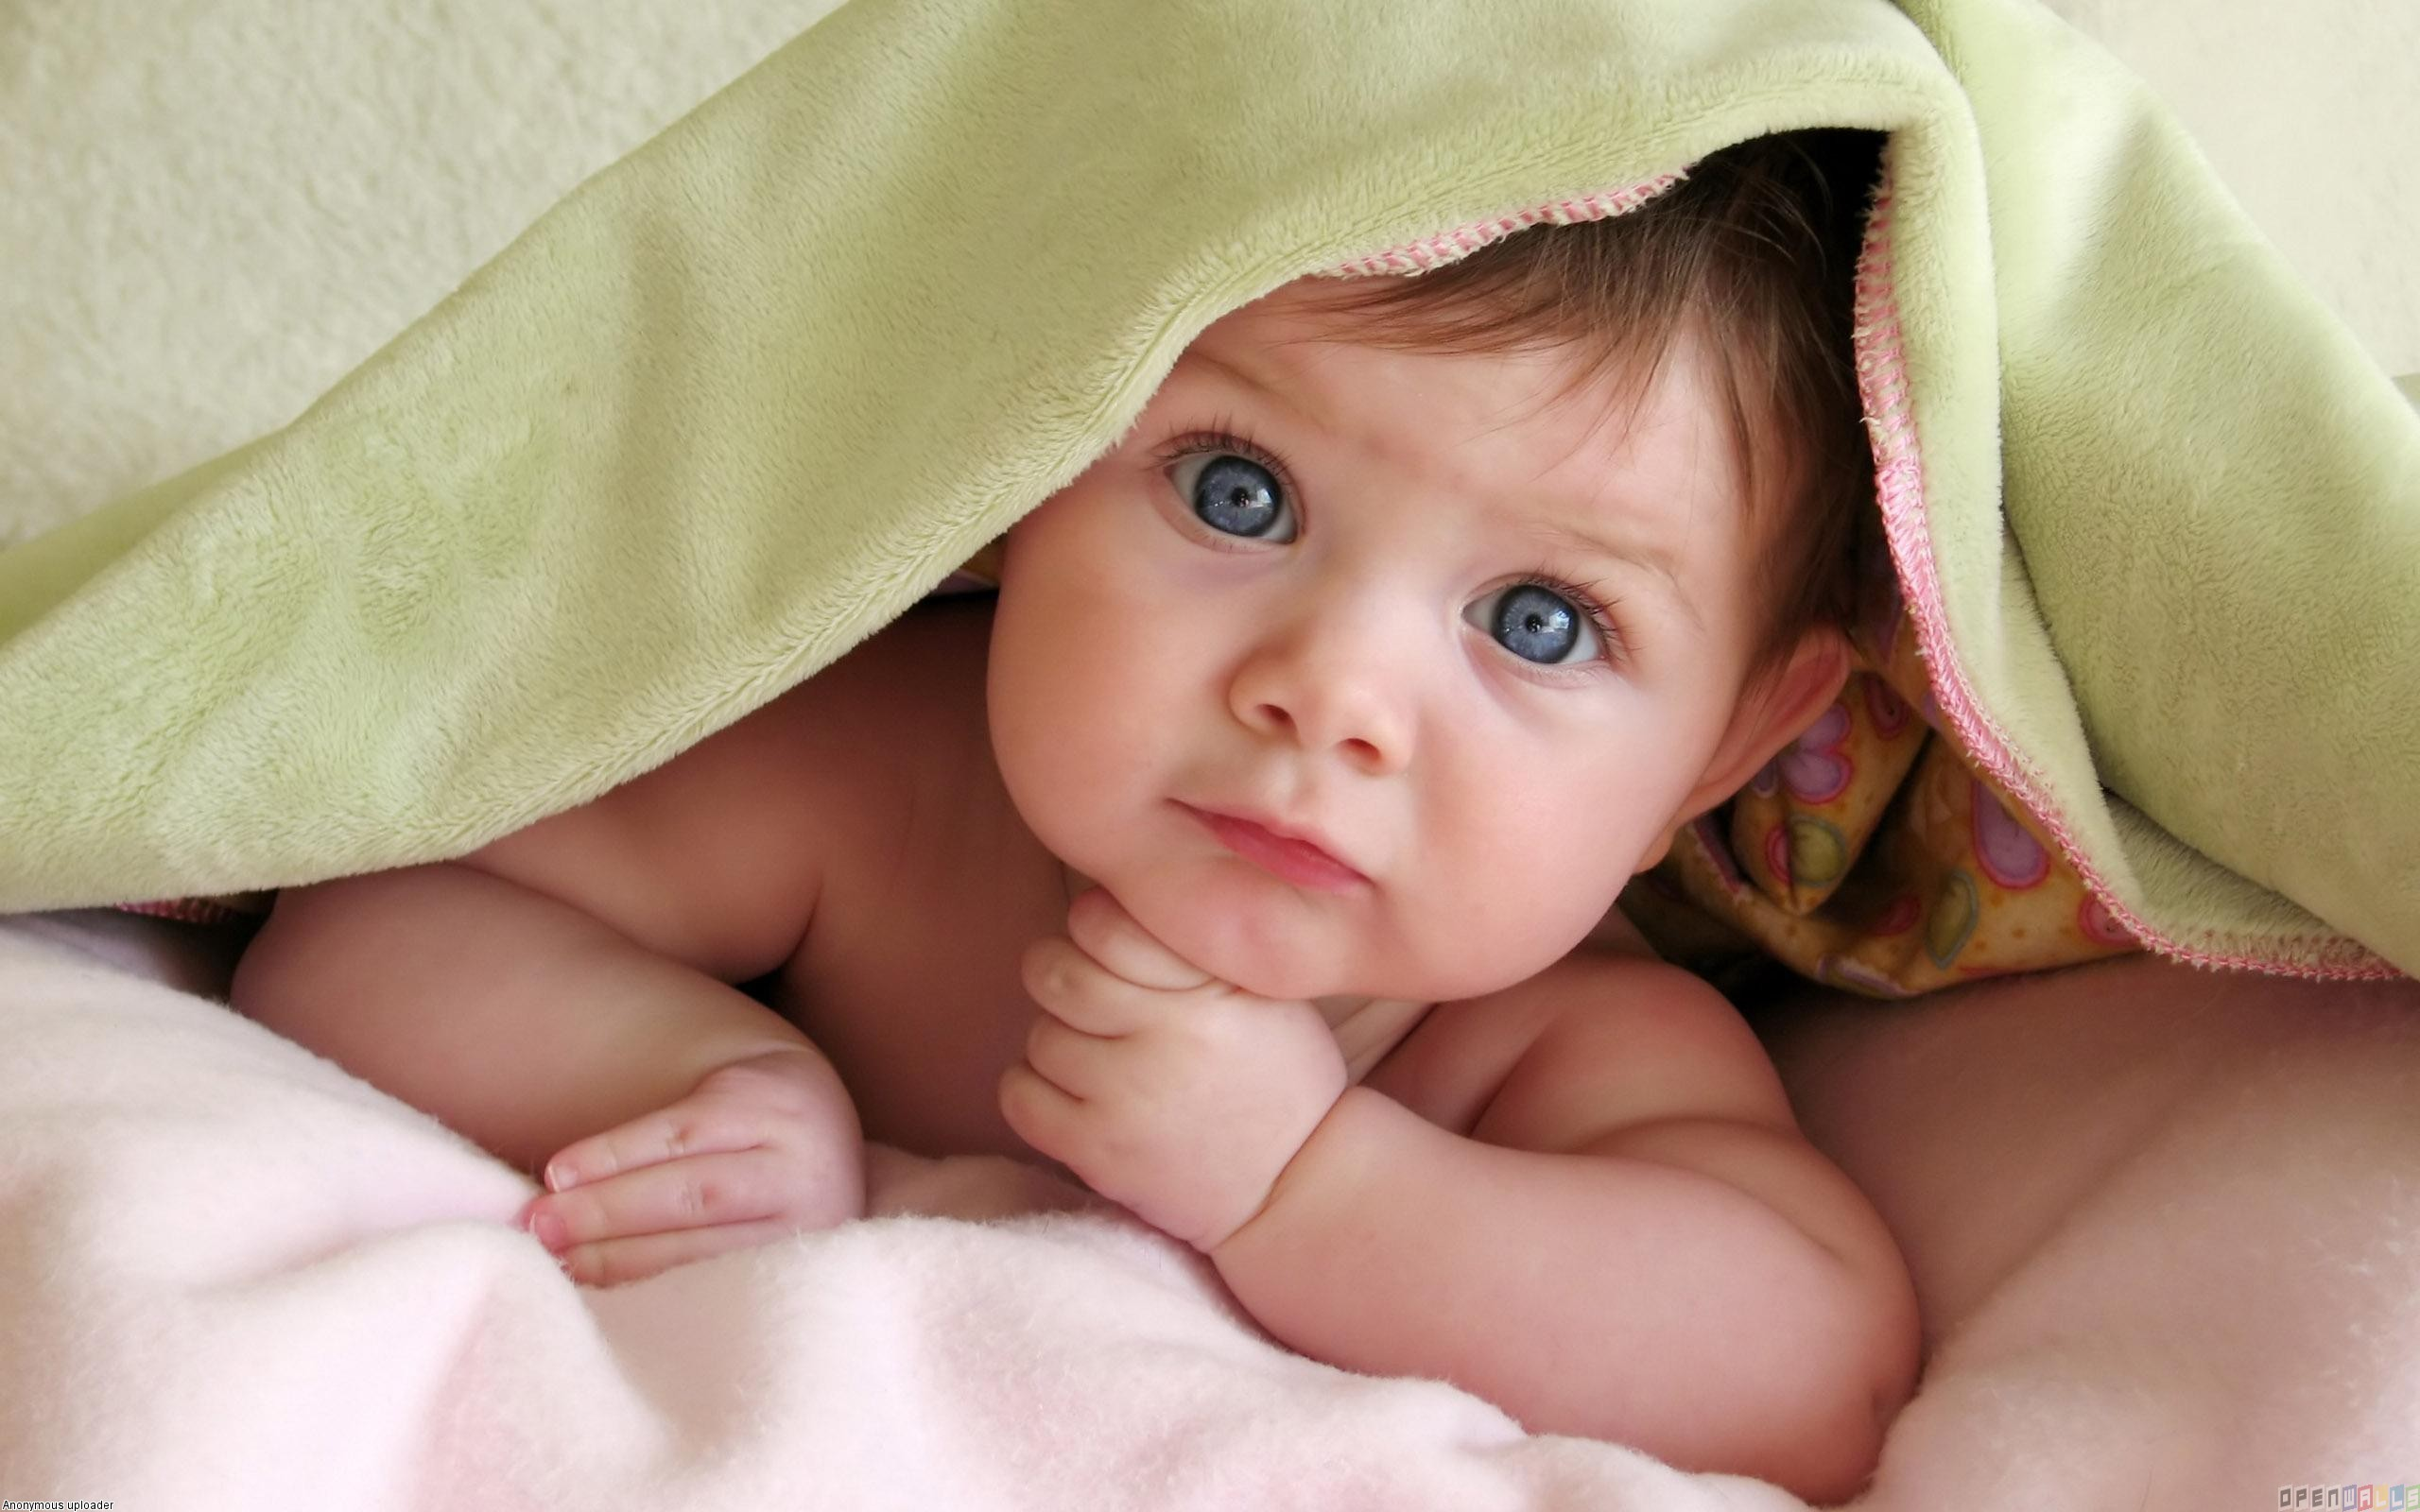 Beautiful Cute Baby (Boy & Girls) HD Wallpapers, Photos Free